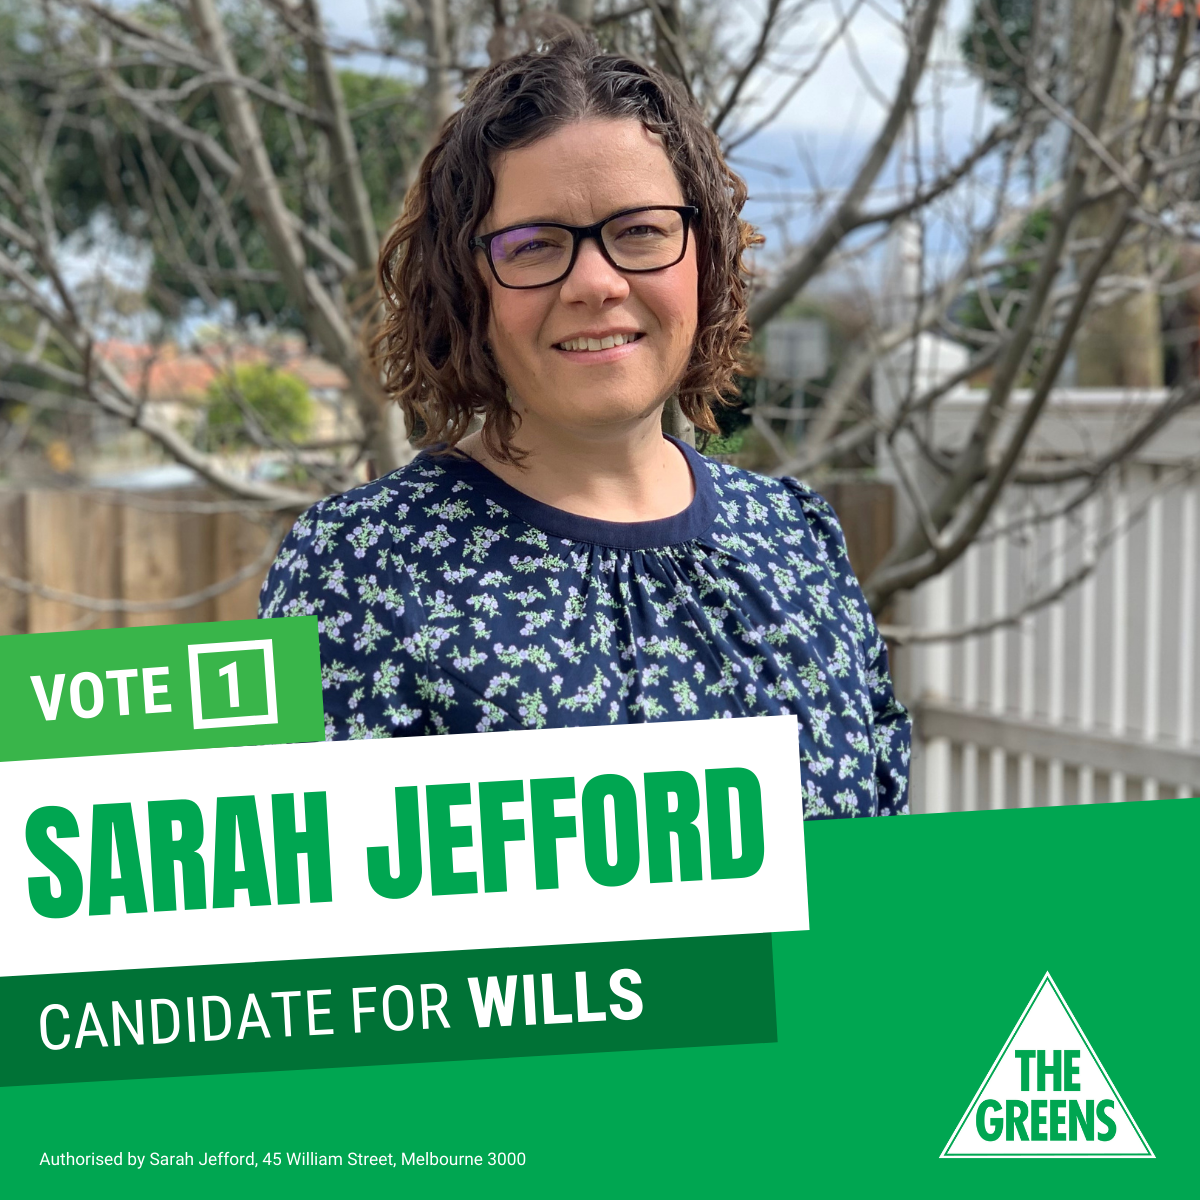 a photo of Sarah Jefford with green overlay with text that reads Vote 1 Sarah Jefford Candidate for Wills and the Greens triangle in the corner.